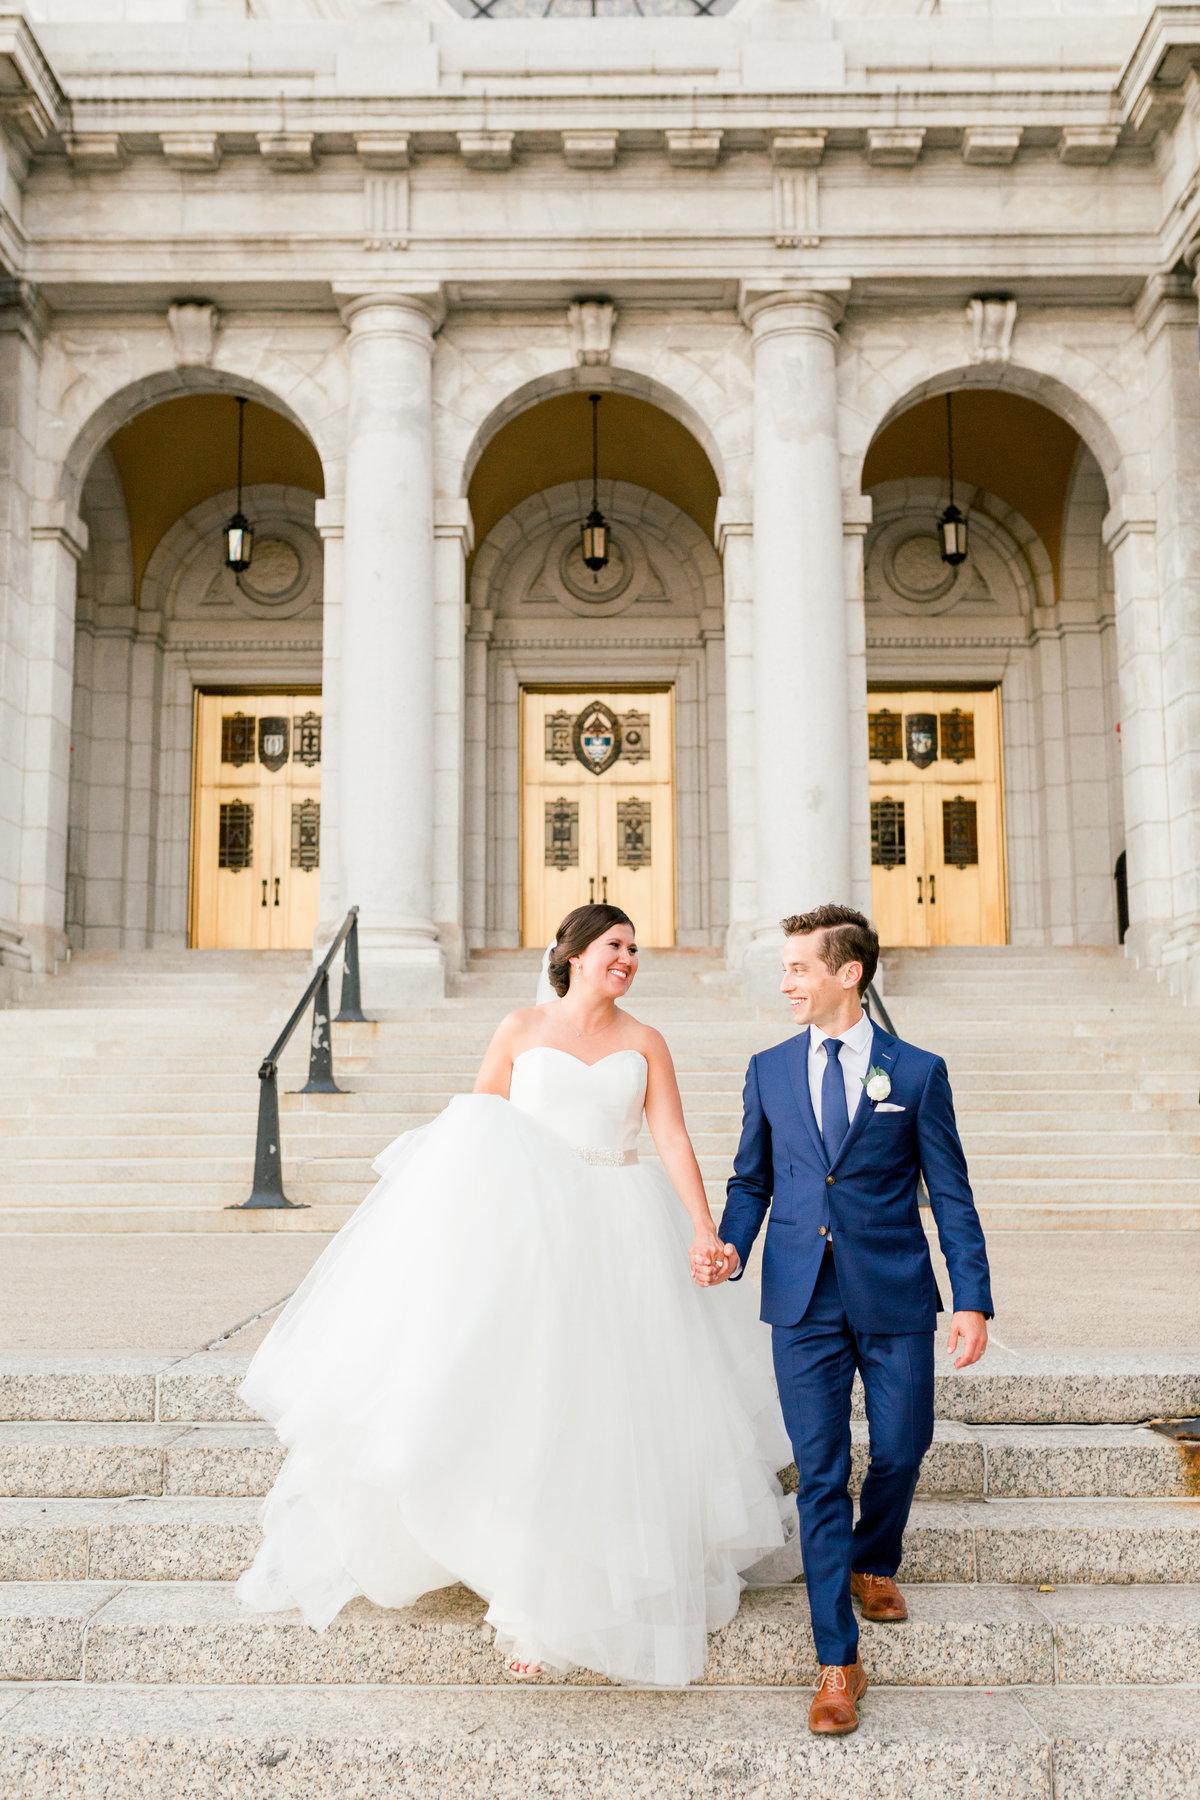 lindsey-taylor-photography-minneapolis-st-peters-basilica-wedding-photographer36